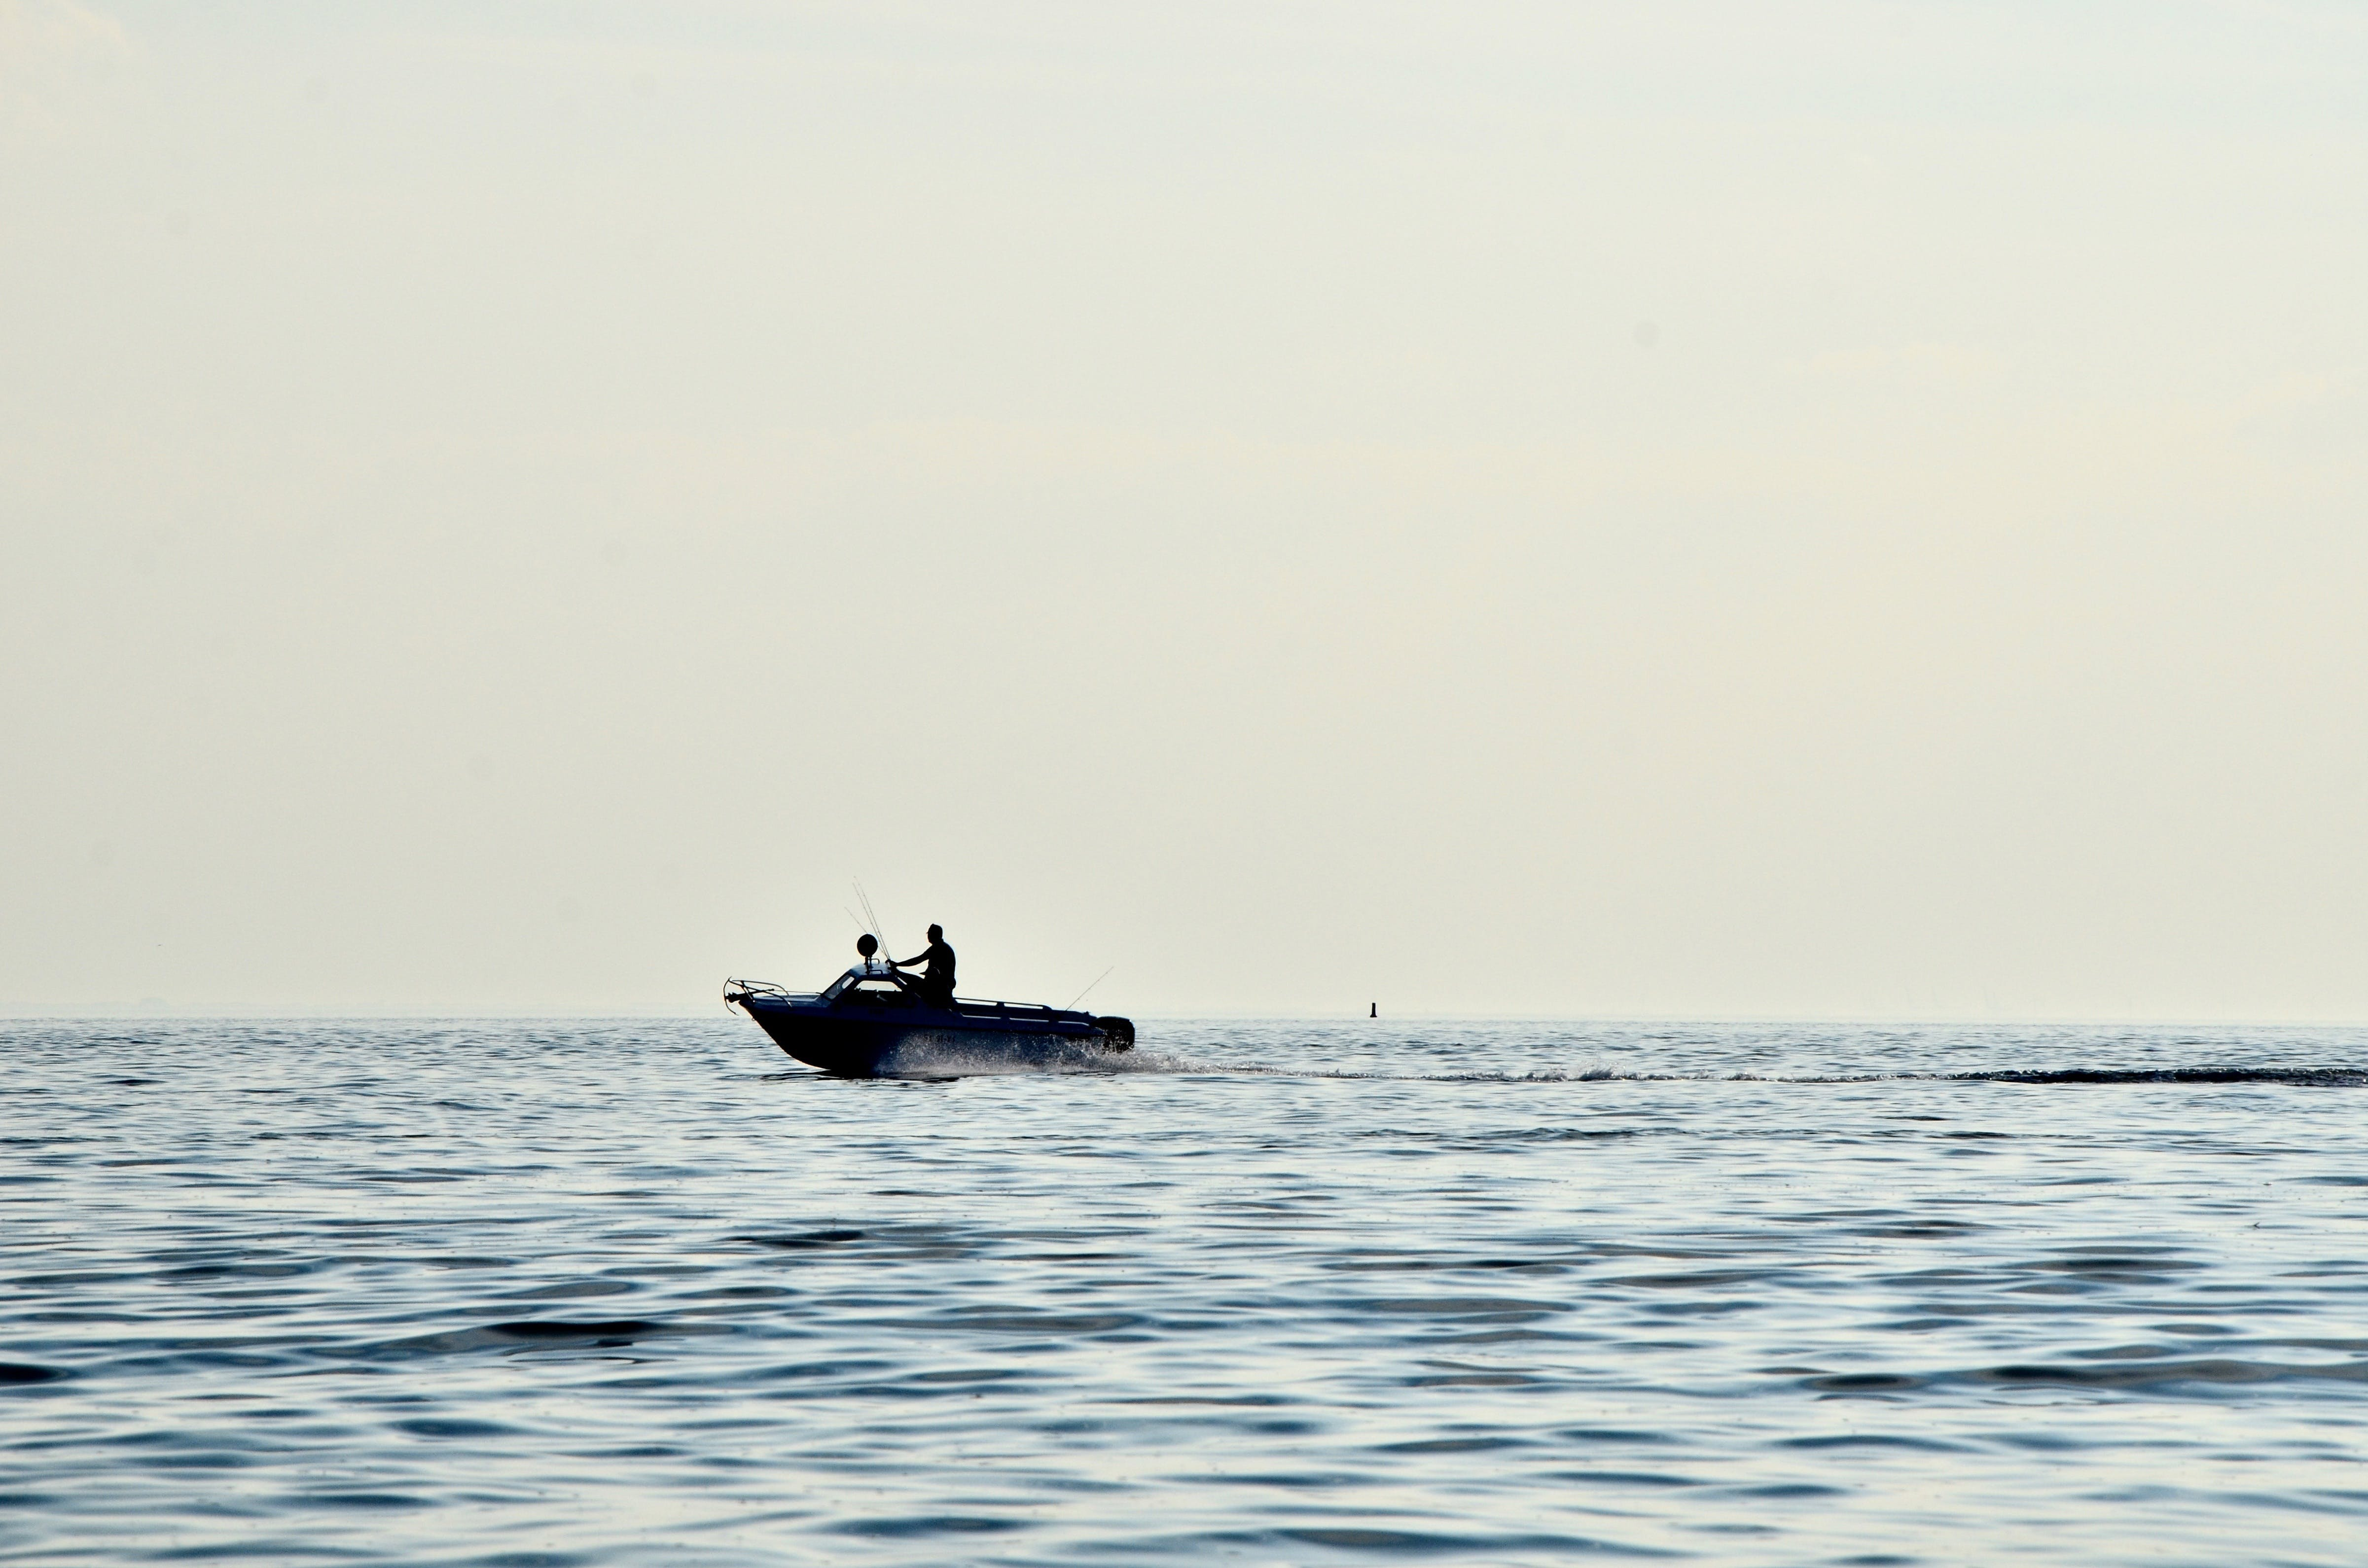 2 People in Boat on Ocean during Daytime